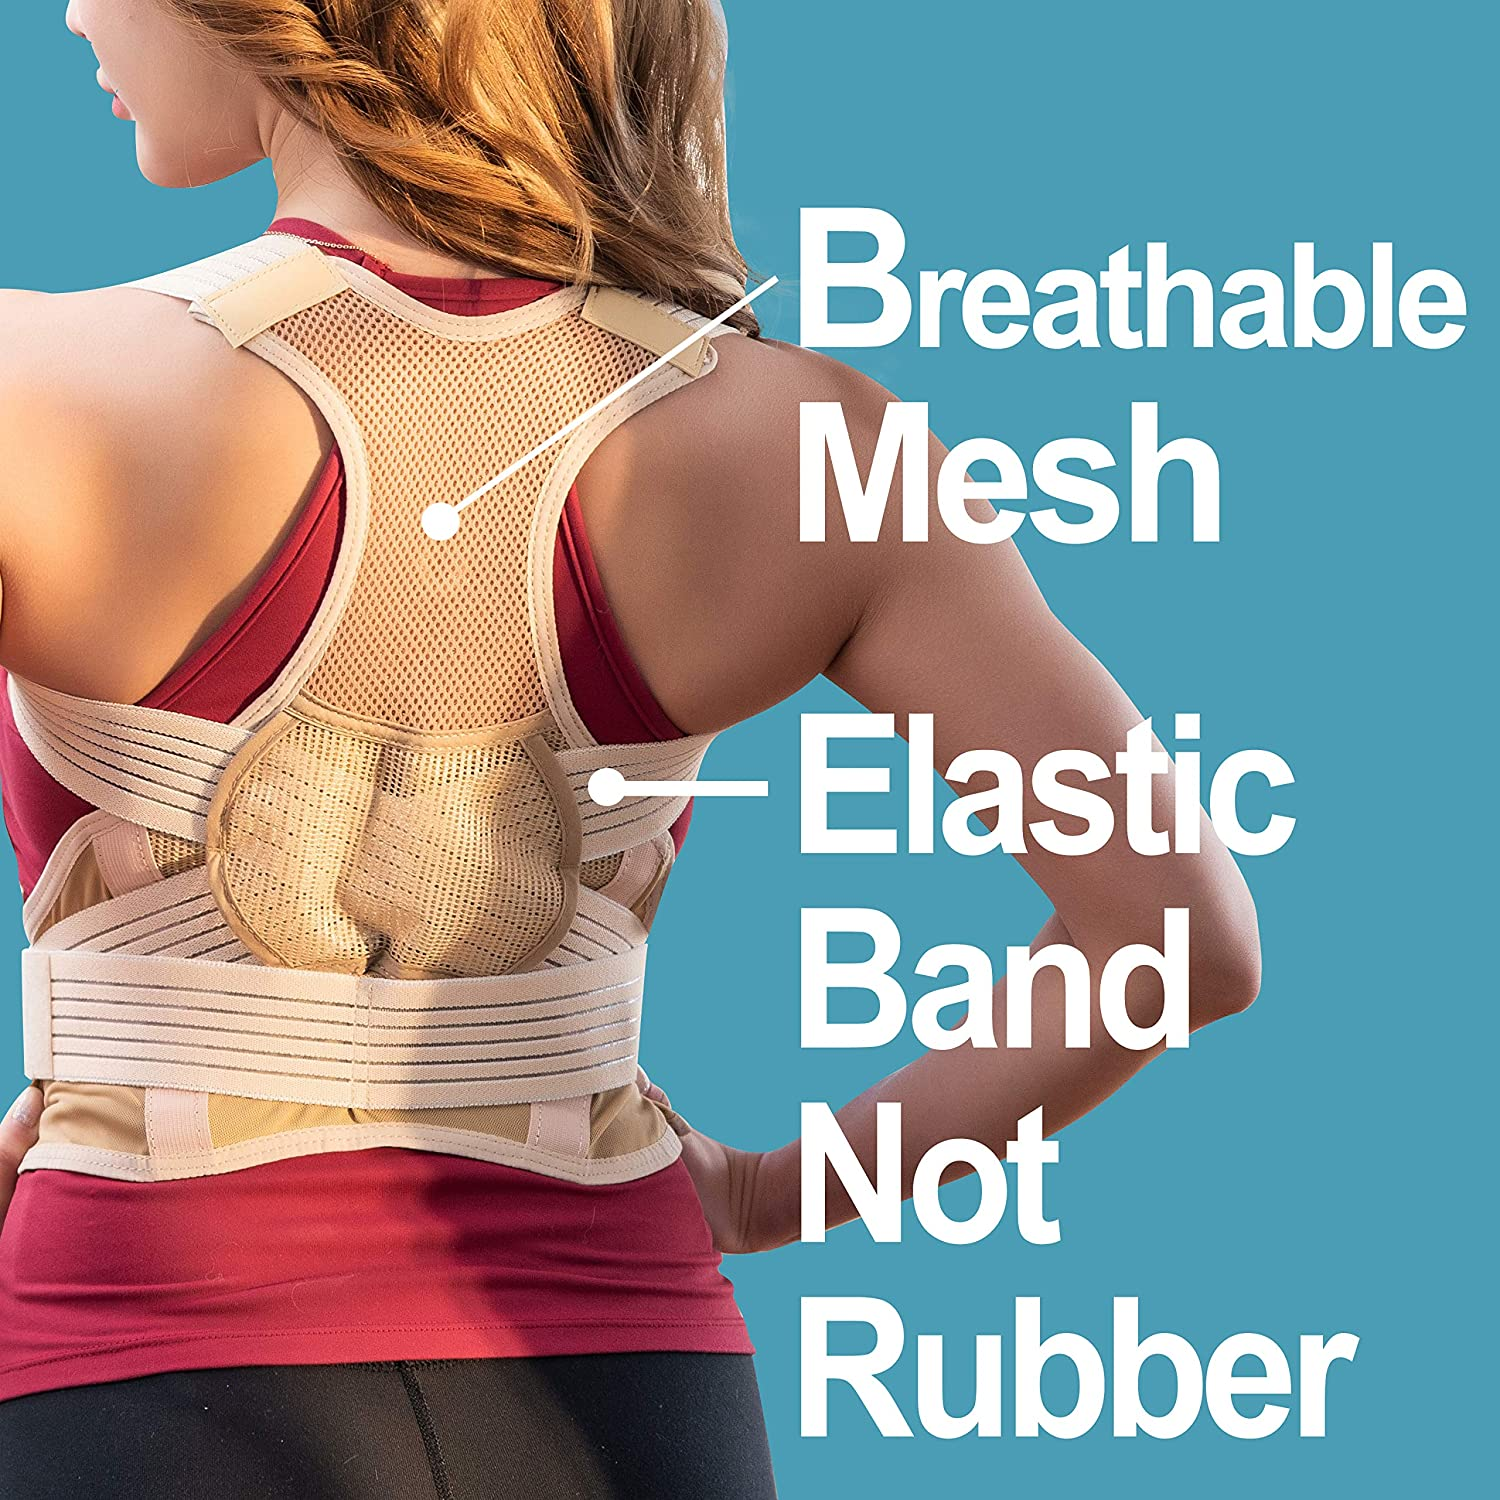 Comfort Breathable Mesh Lumbar Support MaideInSouthKorea Dailybucket Posture Corrector for Women And Men And kids Shoulder Posture Neck Brace Back Brace Medium Back Posture for Pain Relief